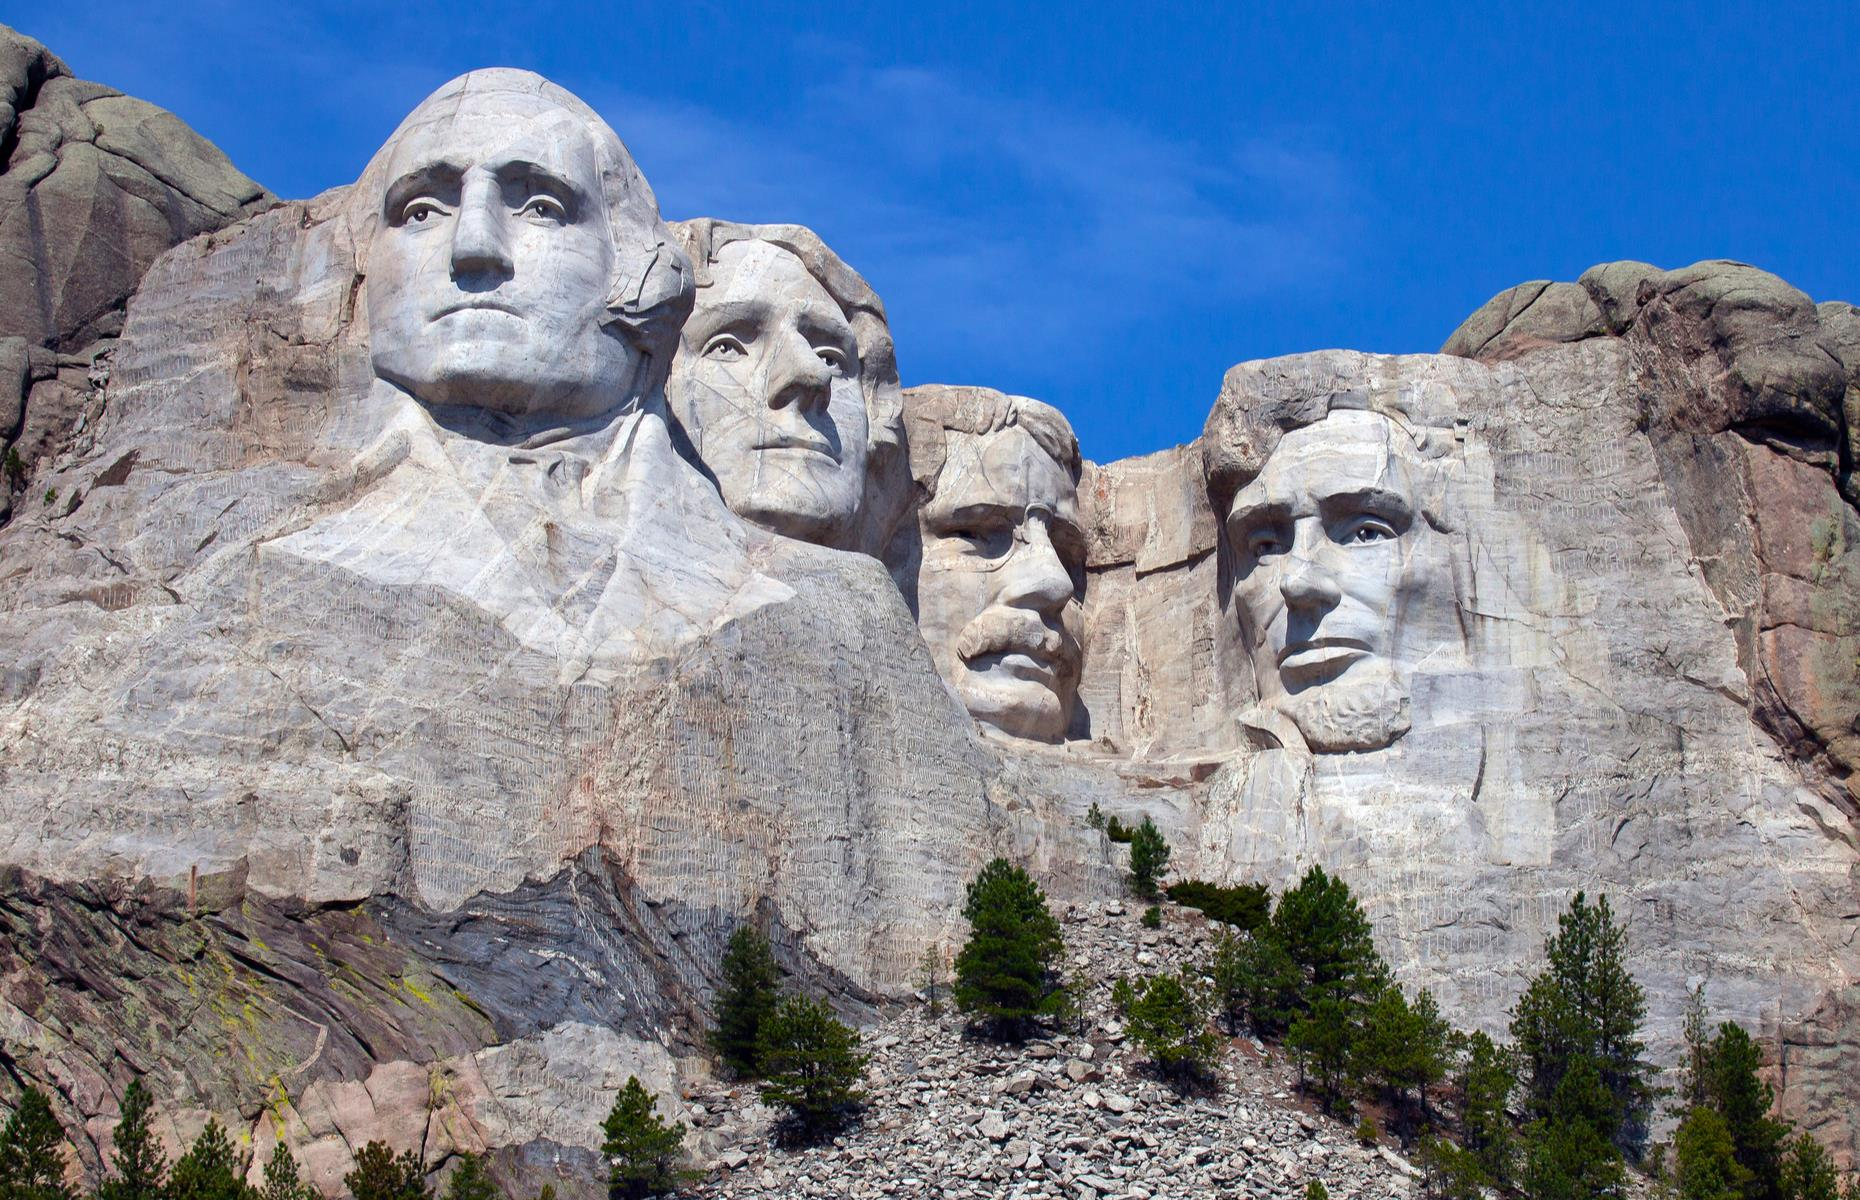 Slide 39 of 51: The 60-foot (18m) tall faces of four American presidents (George Washington, Thomas Jefferson, Theodore Roosevelt and Abraham Lincoln) stare out from the granite rock faces of the Black Hills in Keystone. Almost three million visitors usually come to gaze upon the presidents every year but the site is not without controversy. The Black Hills is considered sacred ground for indigenous people and this area was taken from them by the government after a series of bloody battles.